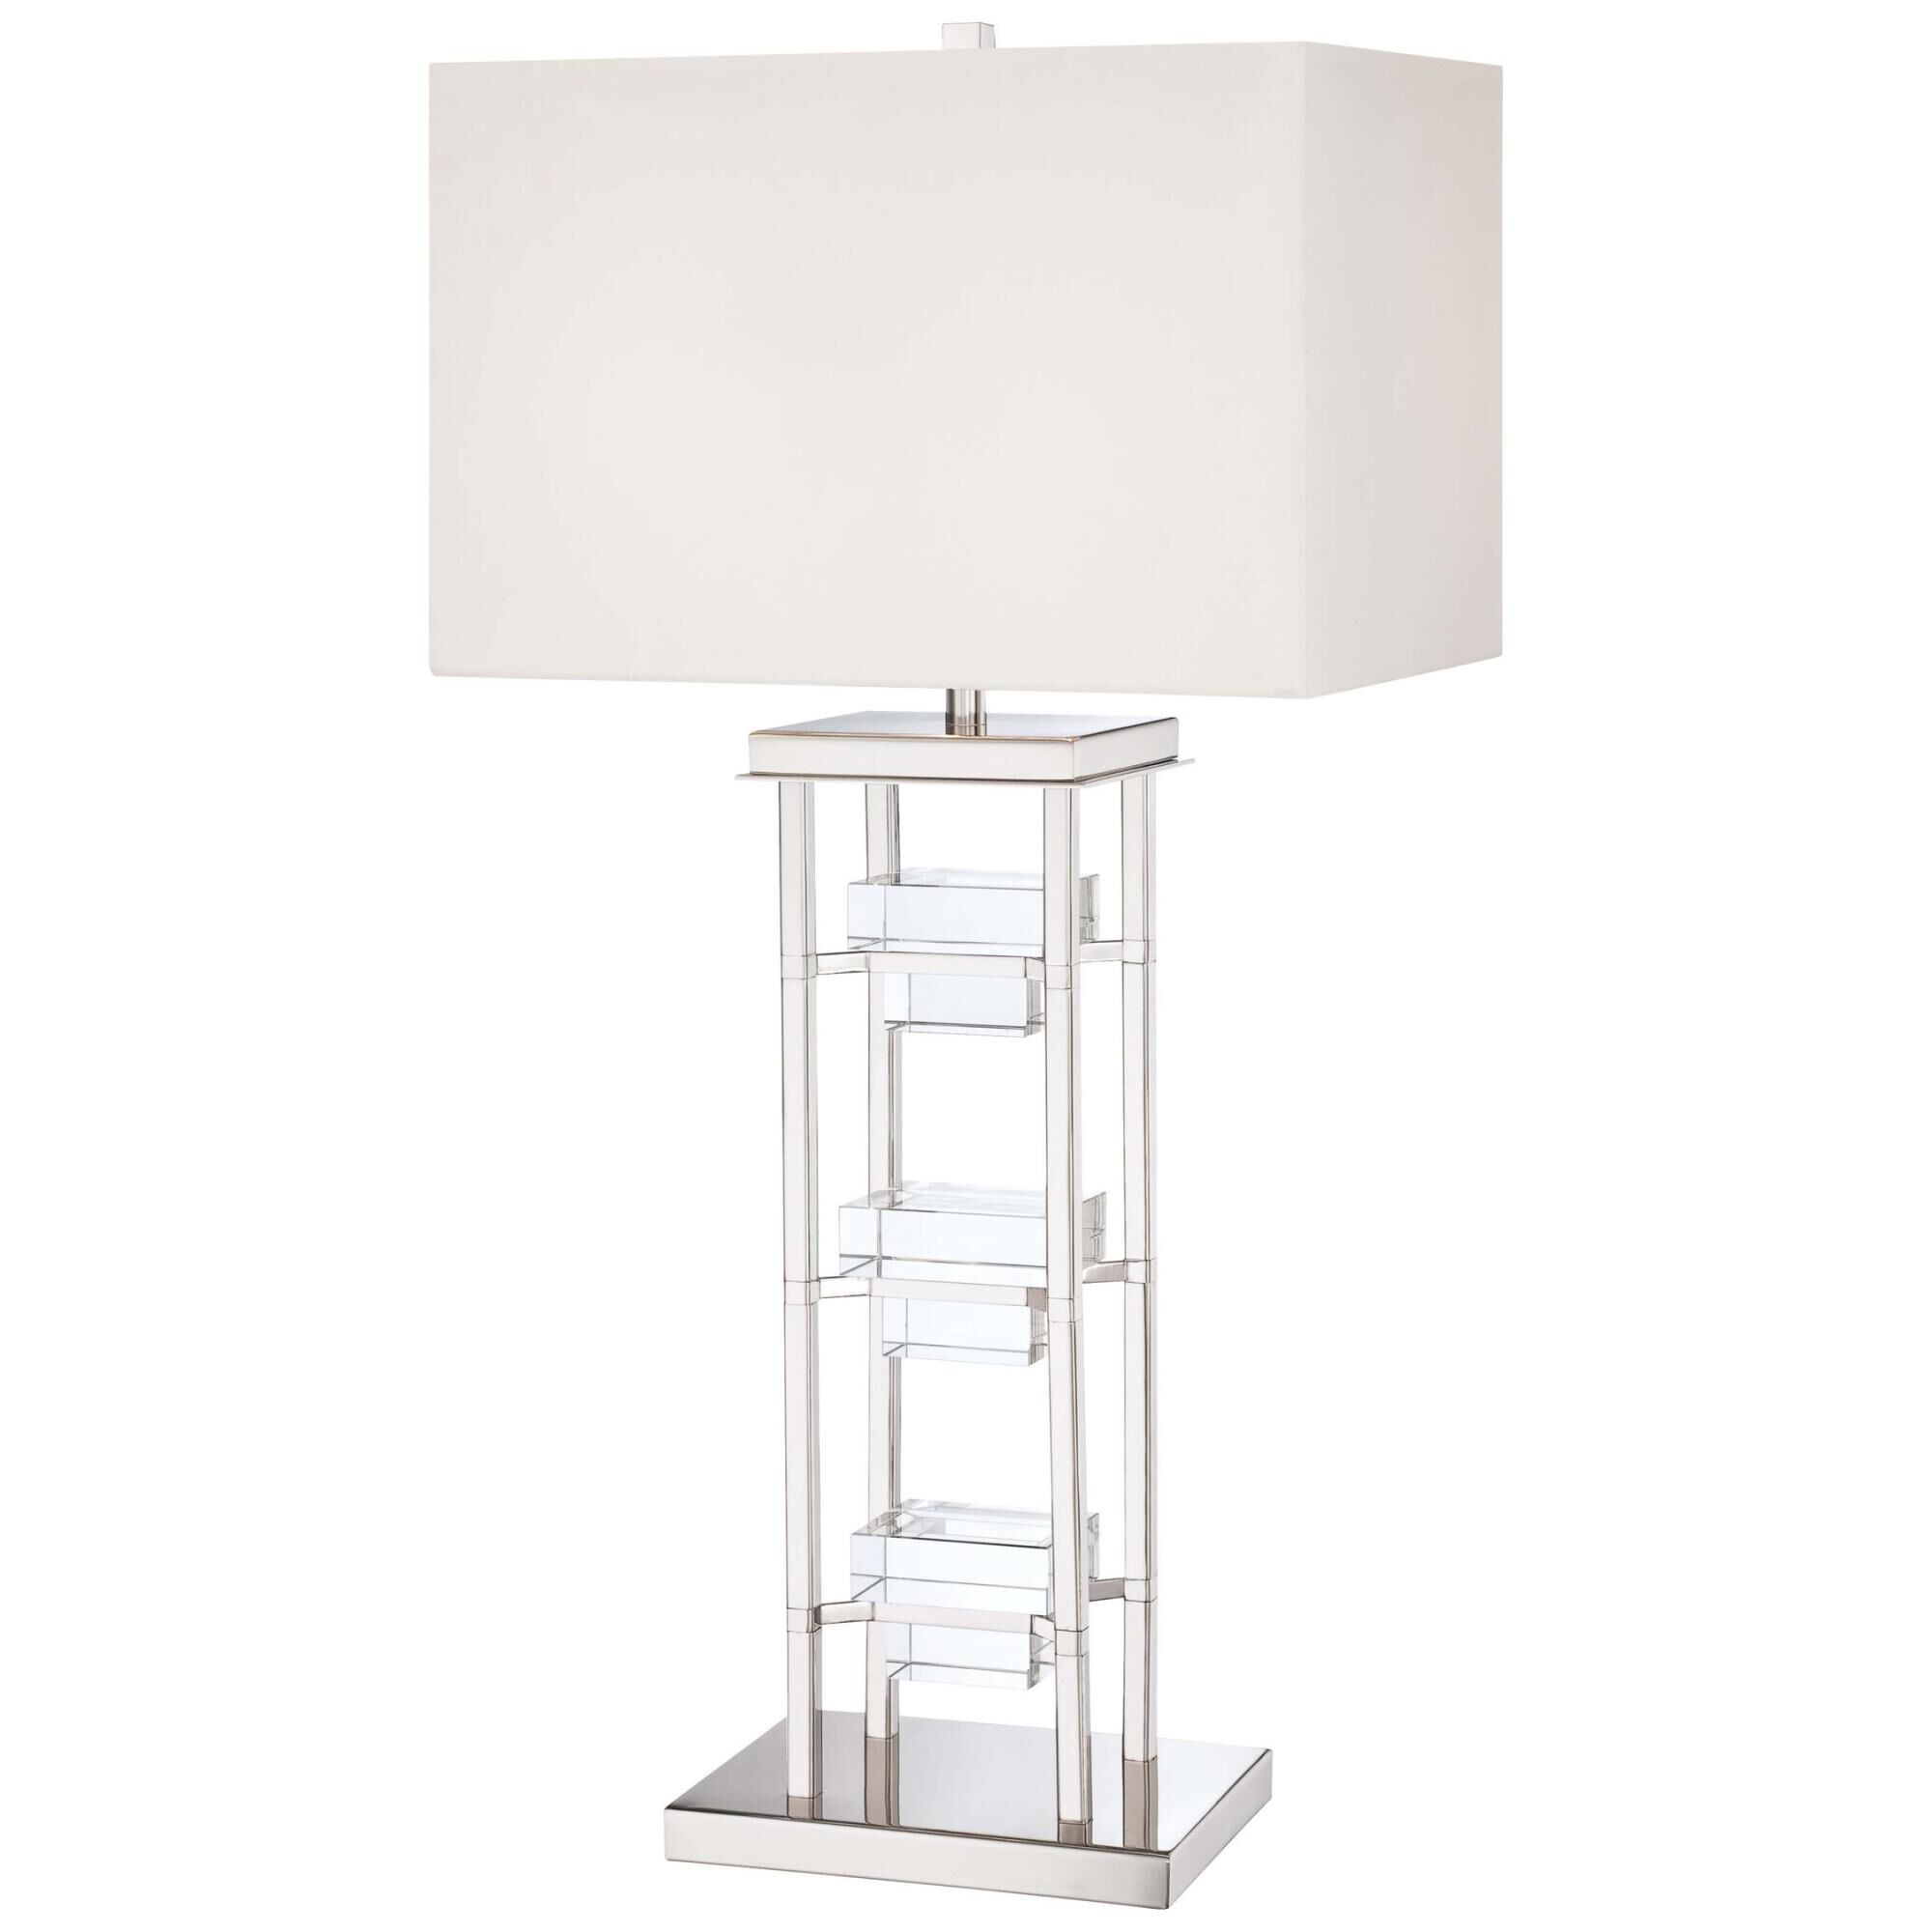 Kovacs 33 Inch Table Lamp - P765-613 - Modern Contemporary